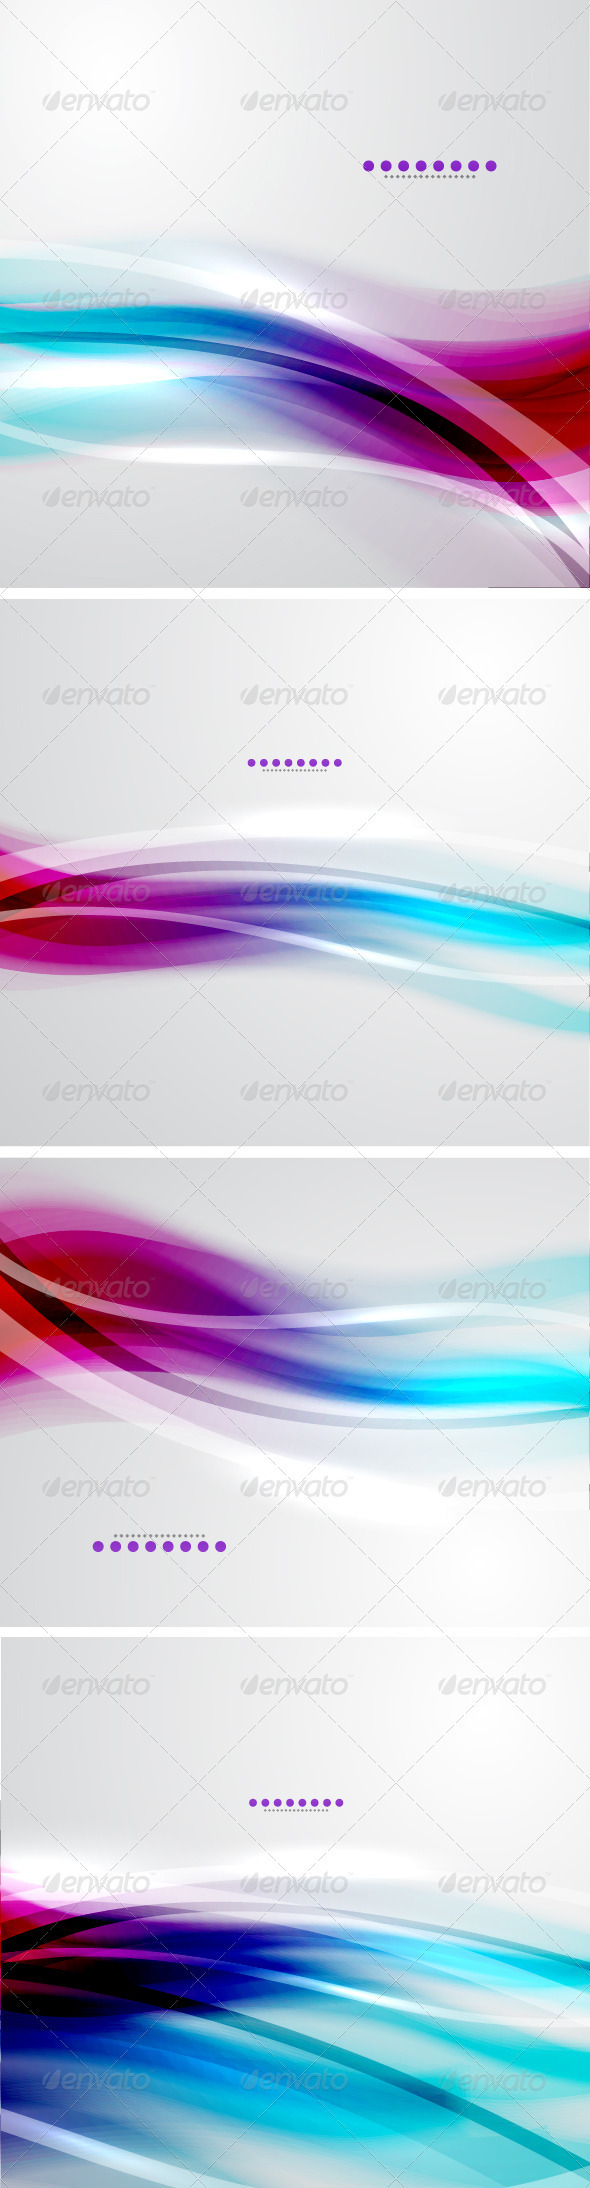 Vector Soft Light Backgrounds - Backgrounds Decorative